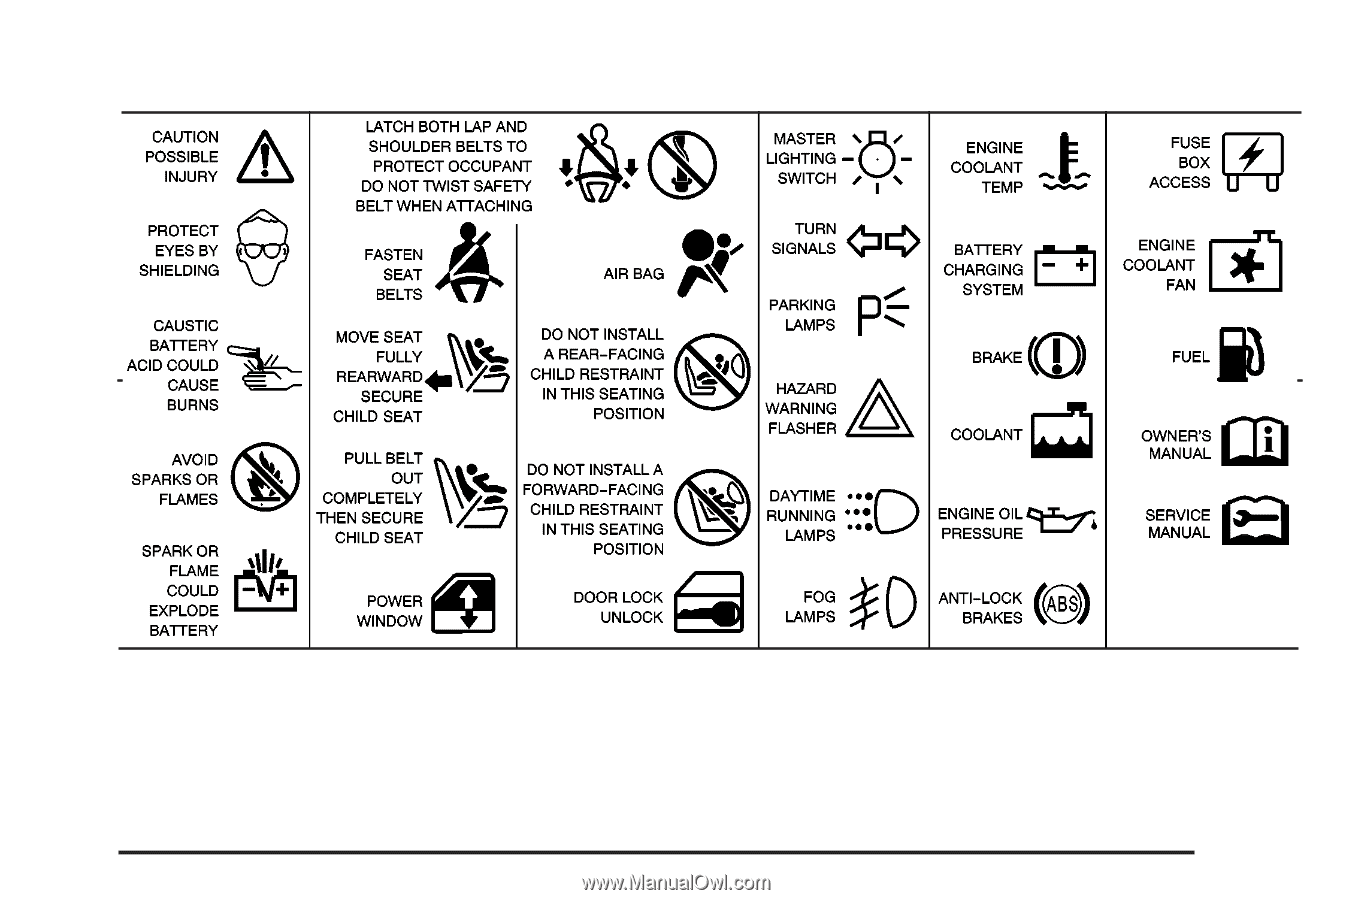 These are some examples of symbols that may be found on the vehicle: